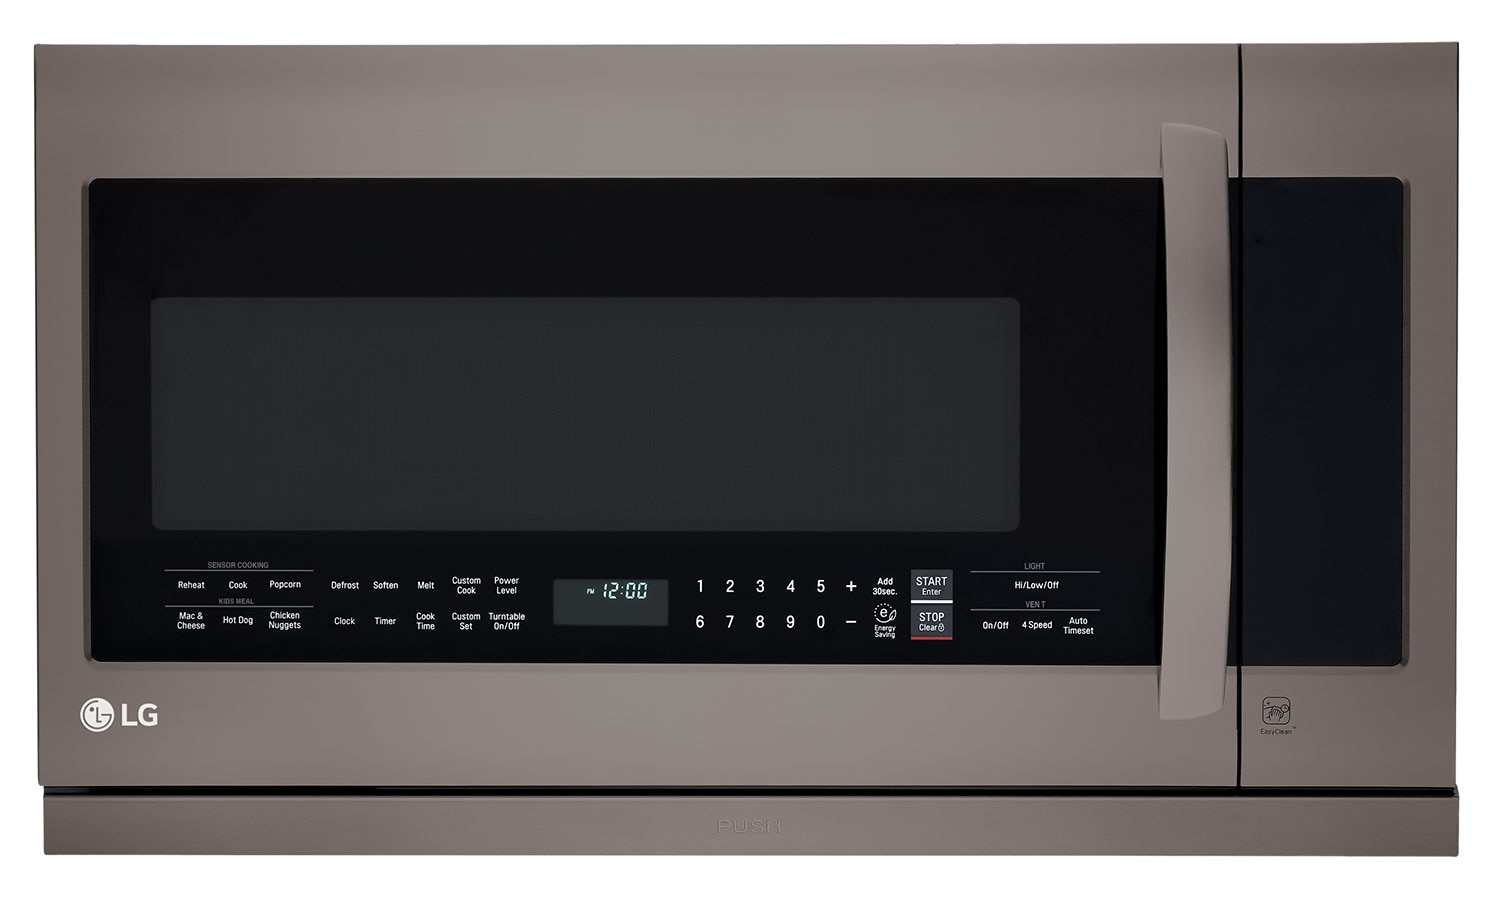 LG 2.2 Cu. Ft. Over-the-Range Microwave – Black Stainless Steel LMV2257BD